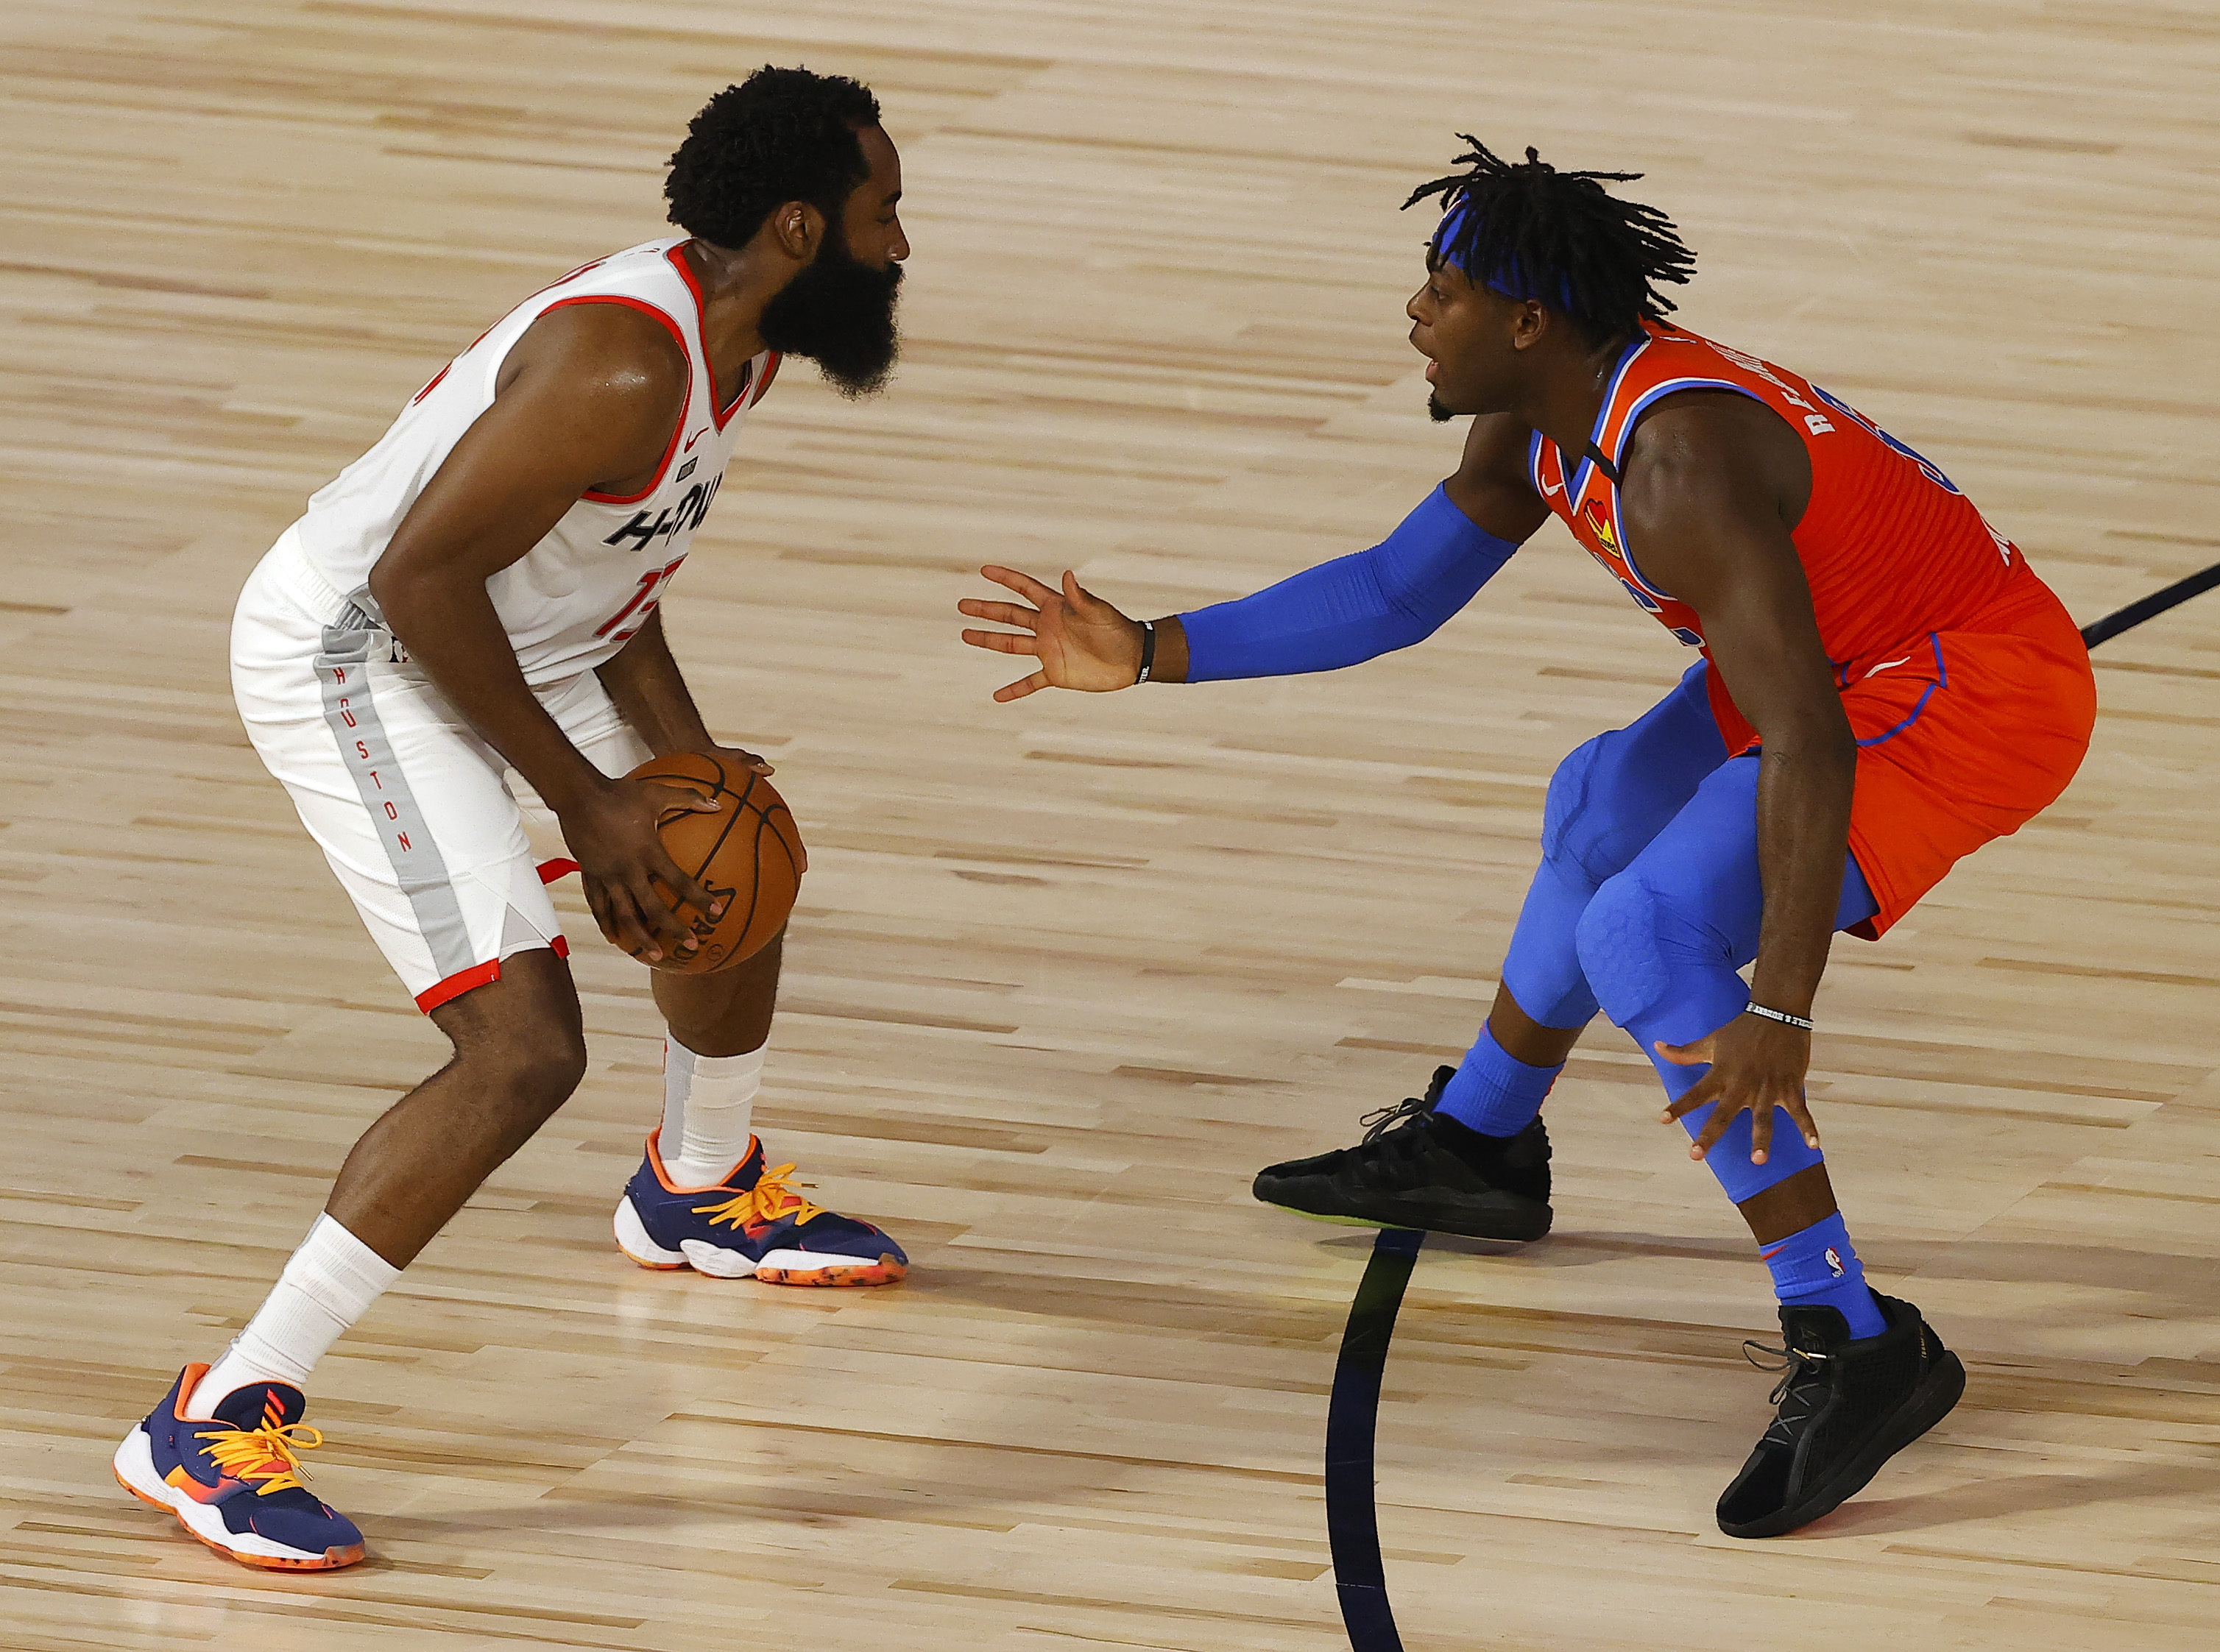 Houston Rockets Vs Oklahoma City Thunder Game 4 Free Live Stream 8 24 20 Watch Nba Playoffs Online Time Tv Channel Nj Com